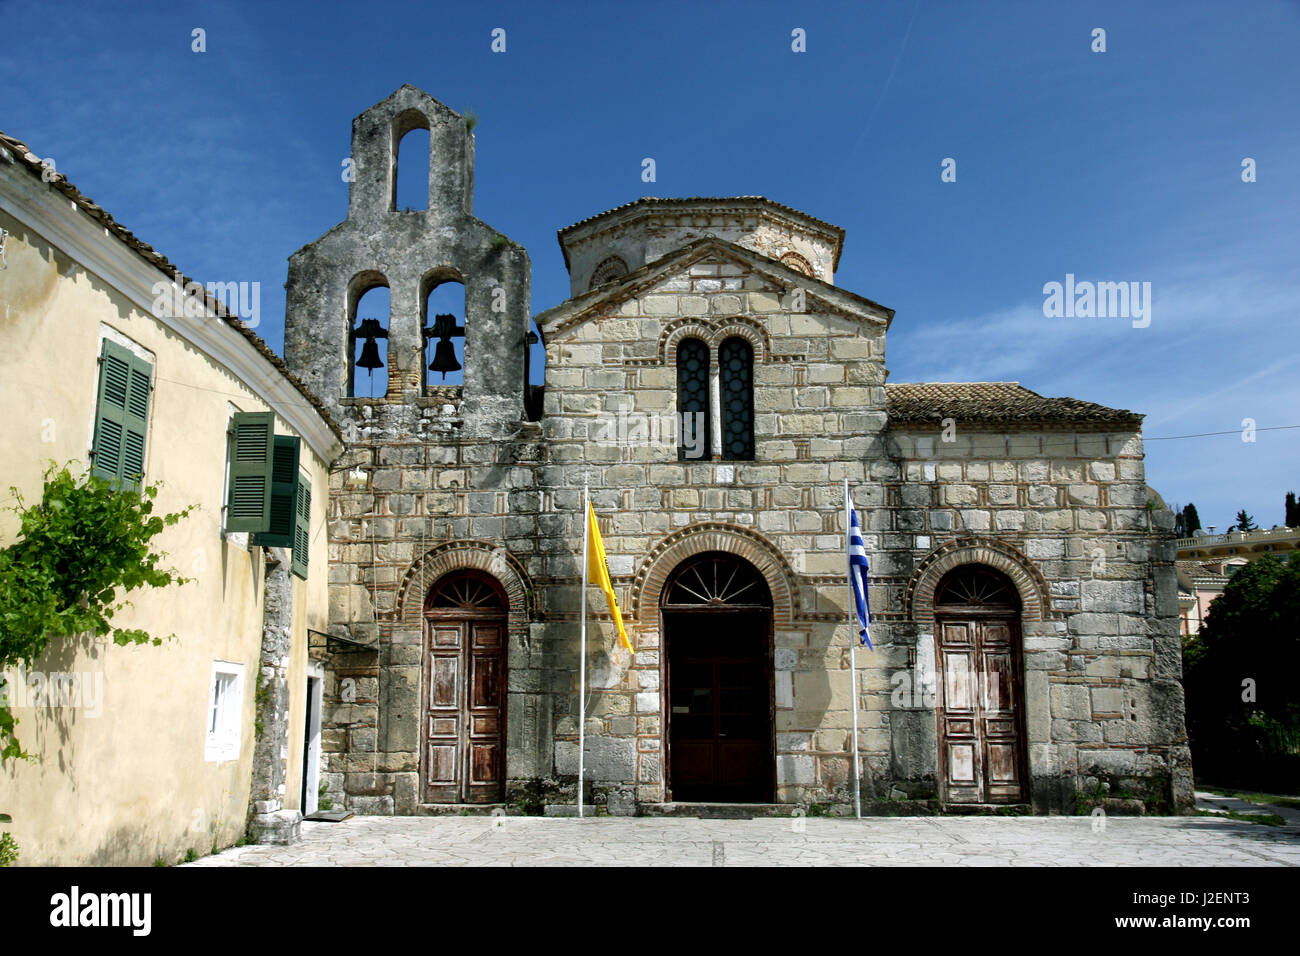 Corfu, Greece. Stone Greek church with bell tower and arched doors and windows, and Greek Flags - Stock Image